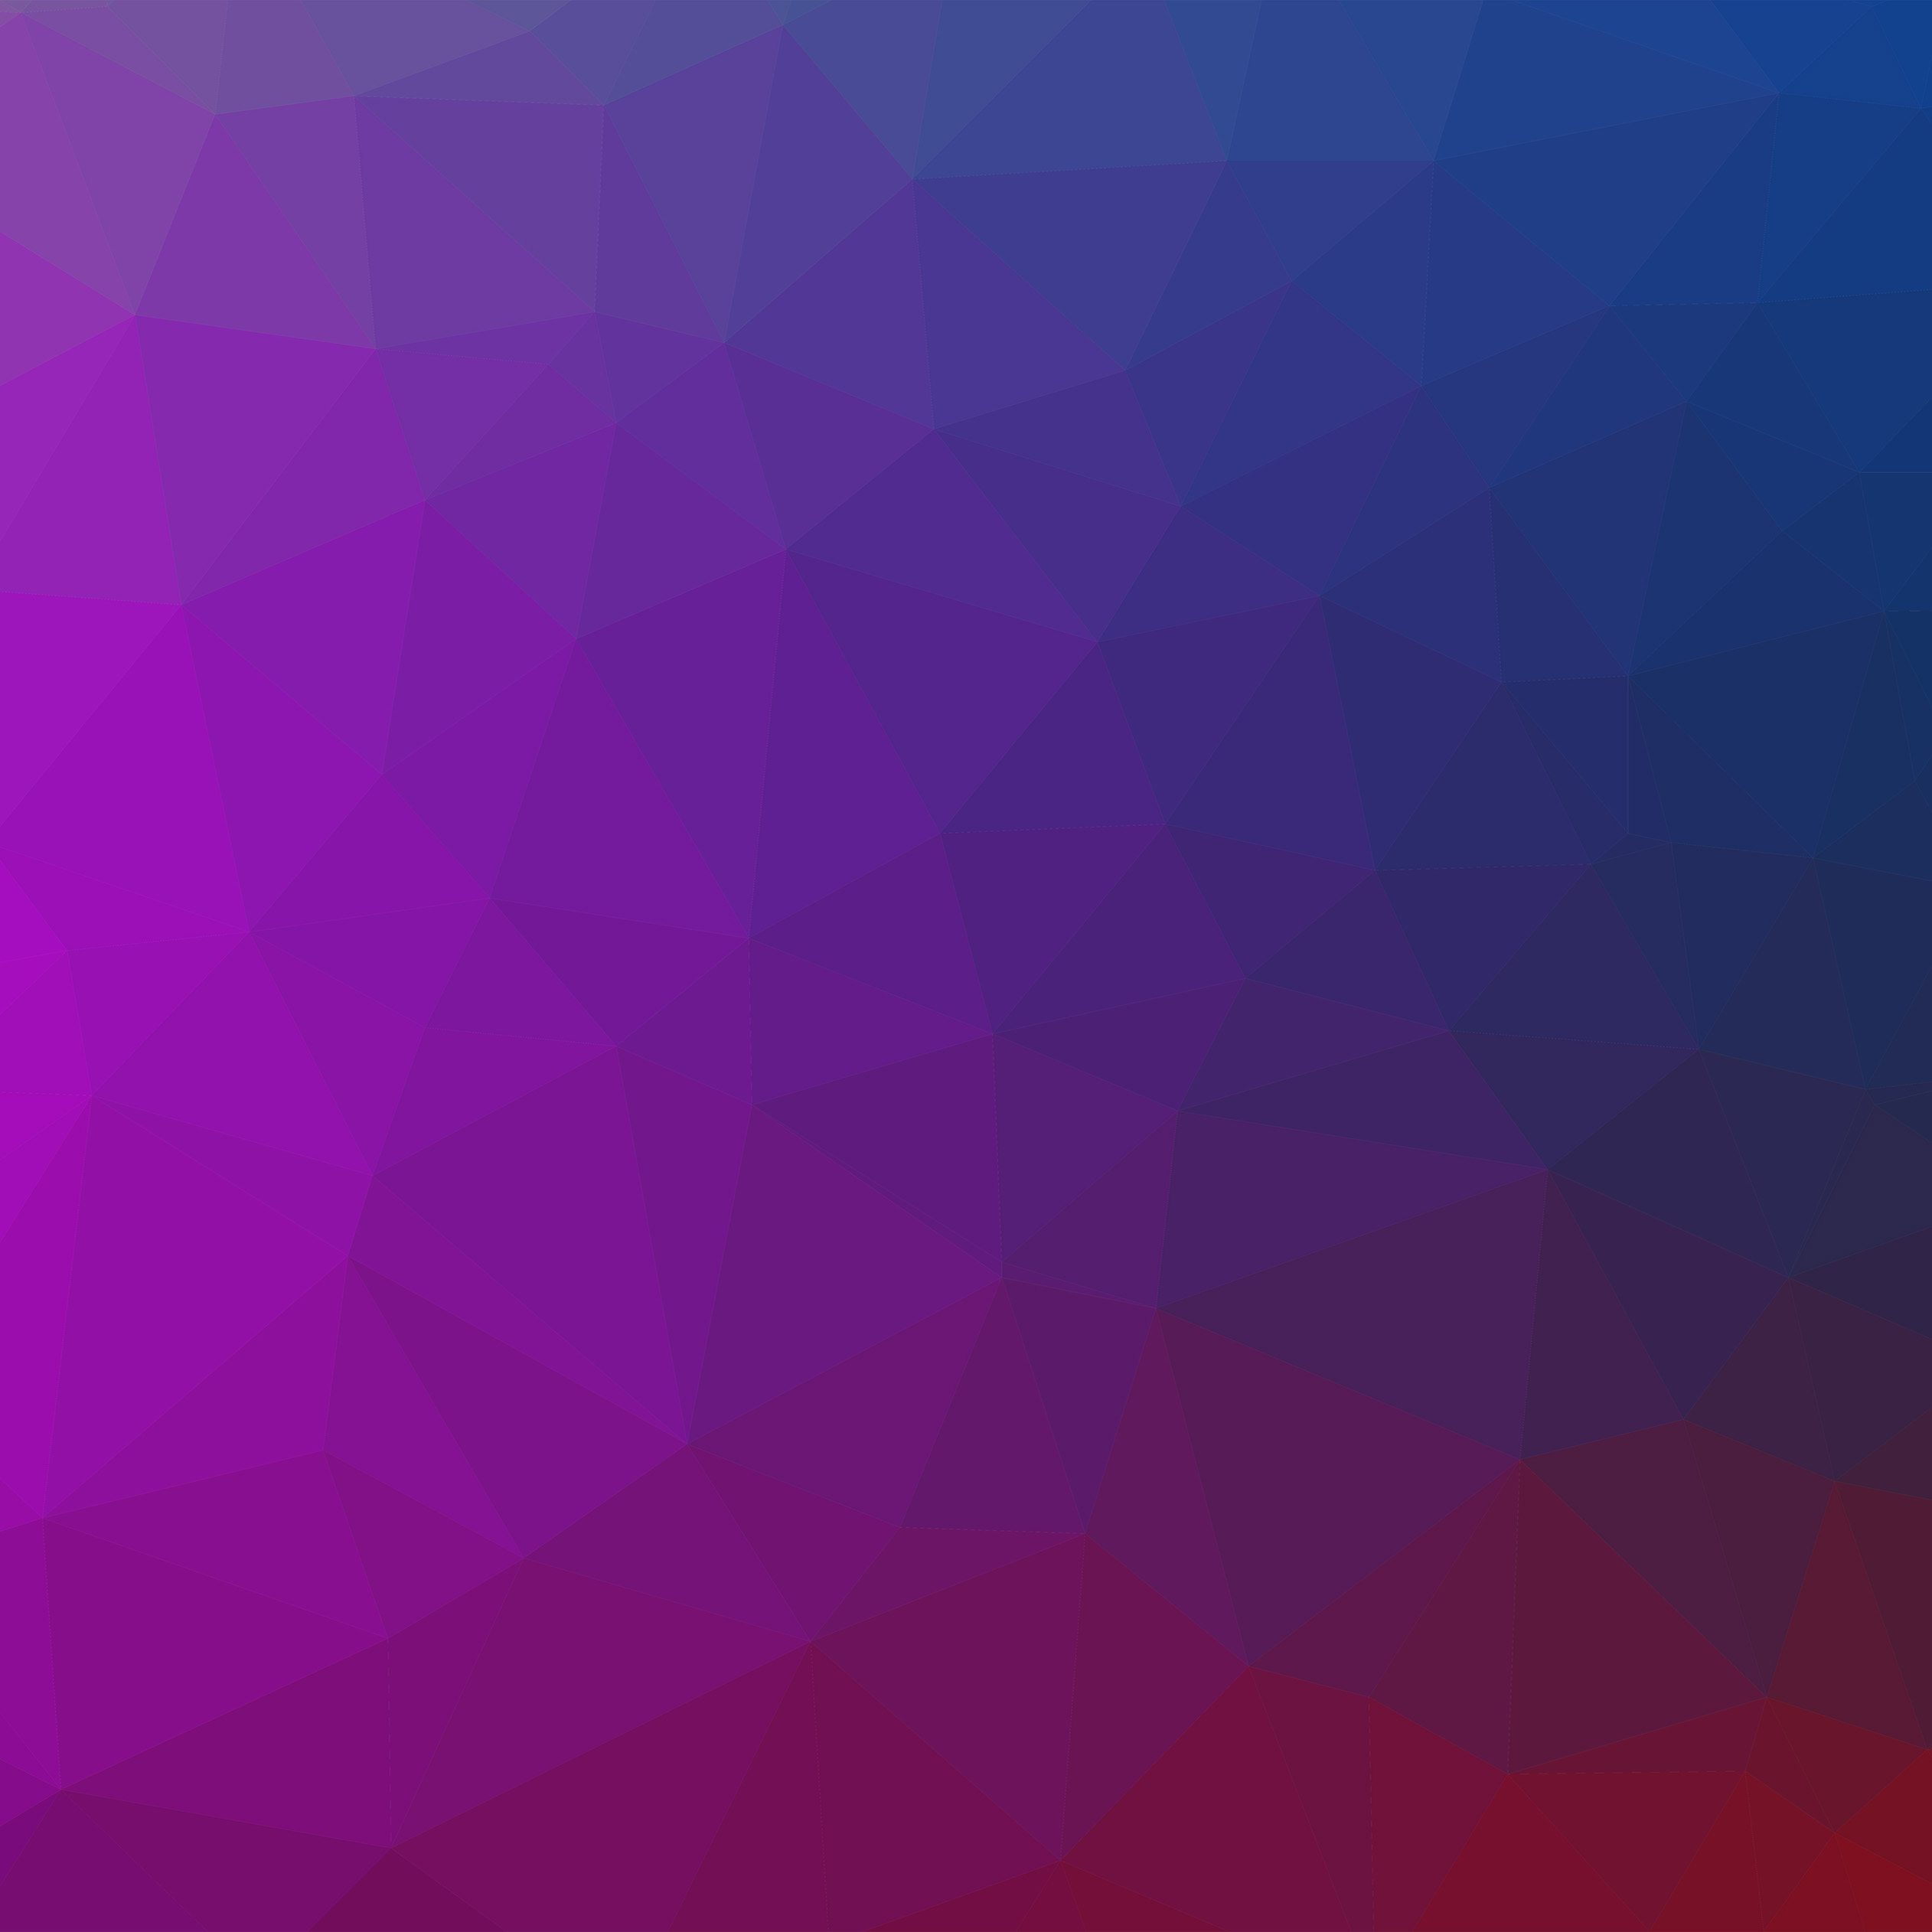 Colorful Iphone Wallpaper: Textured Pattern Wallpapers For IPhone And IPad